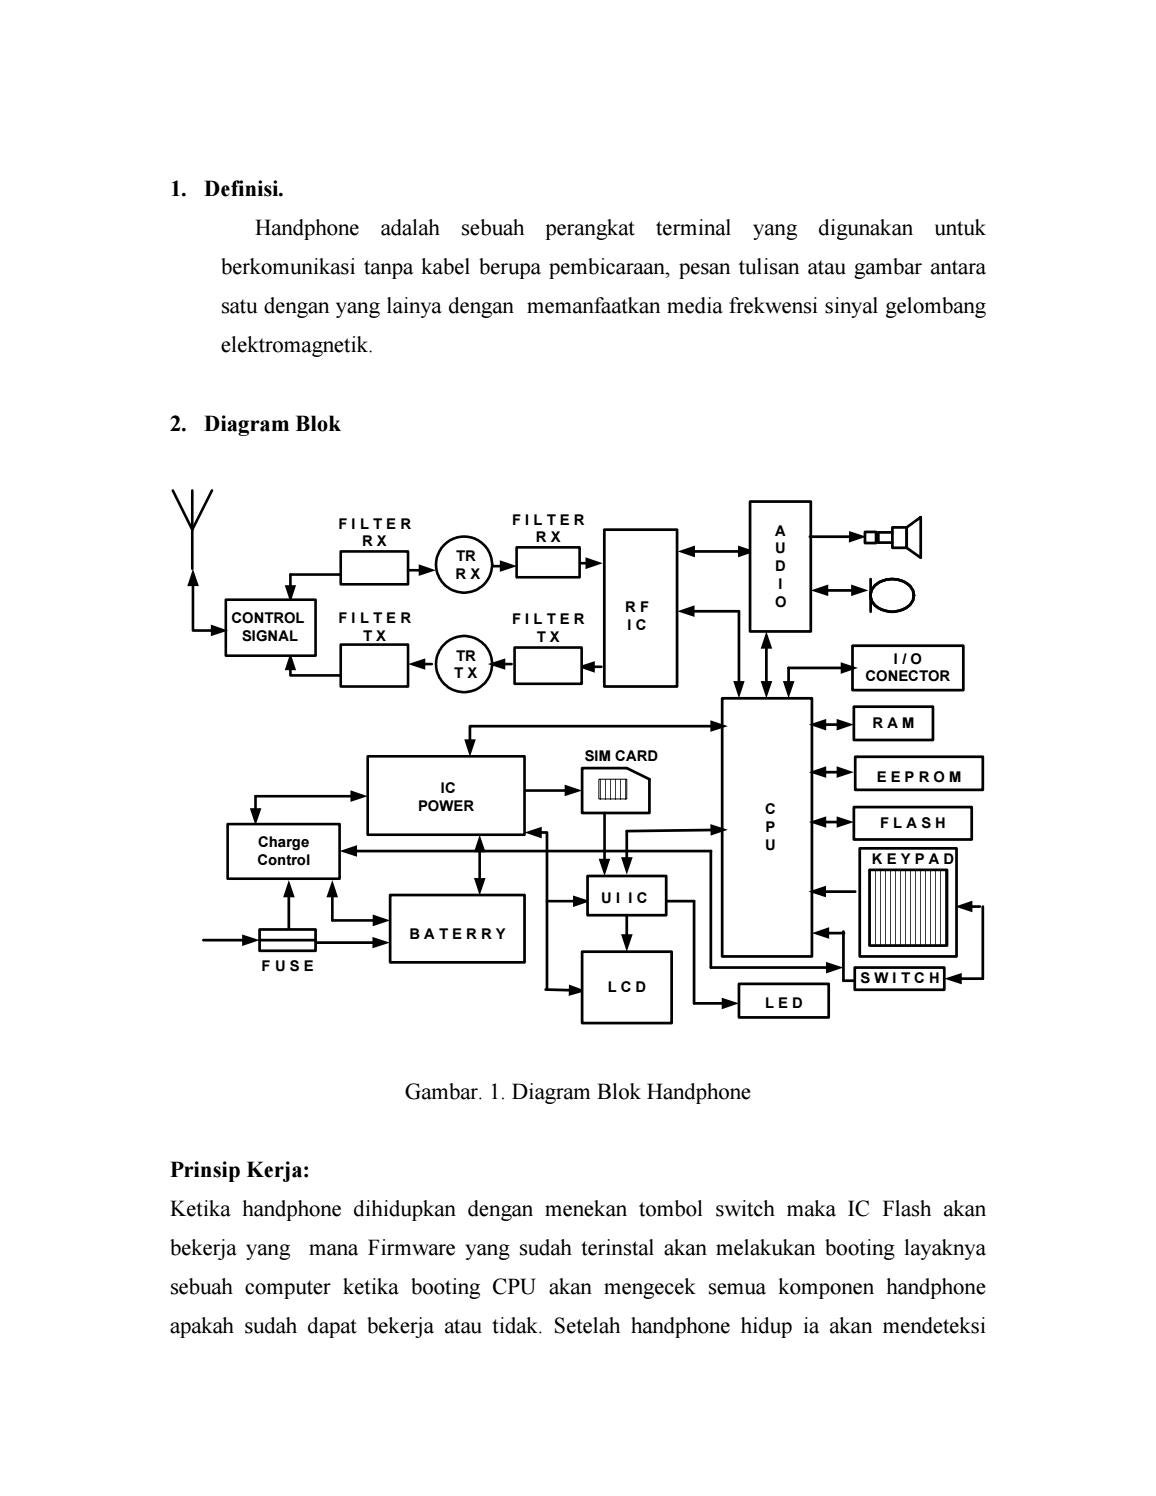 Blok diagram ponsel by modul teknisi hp issuu ccuart Images